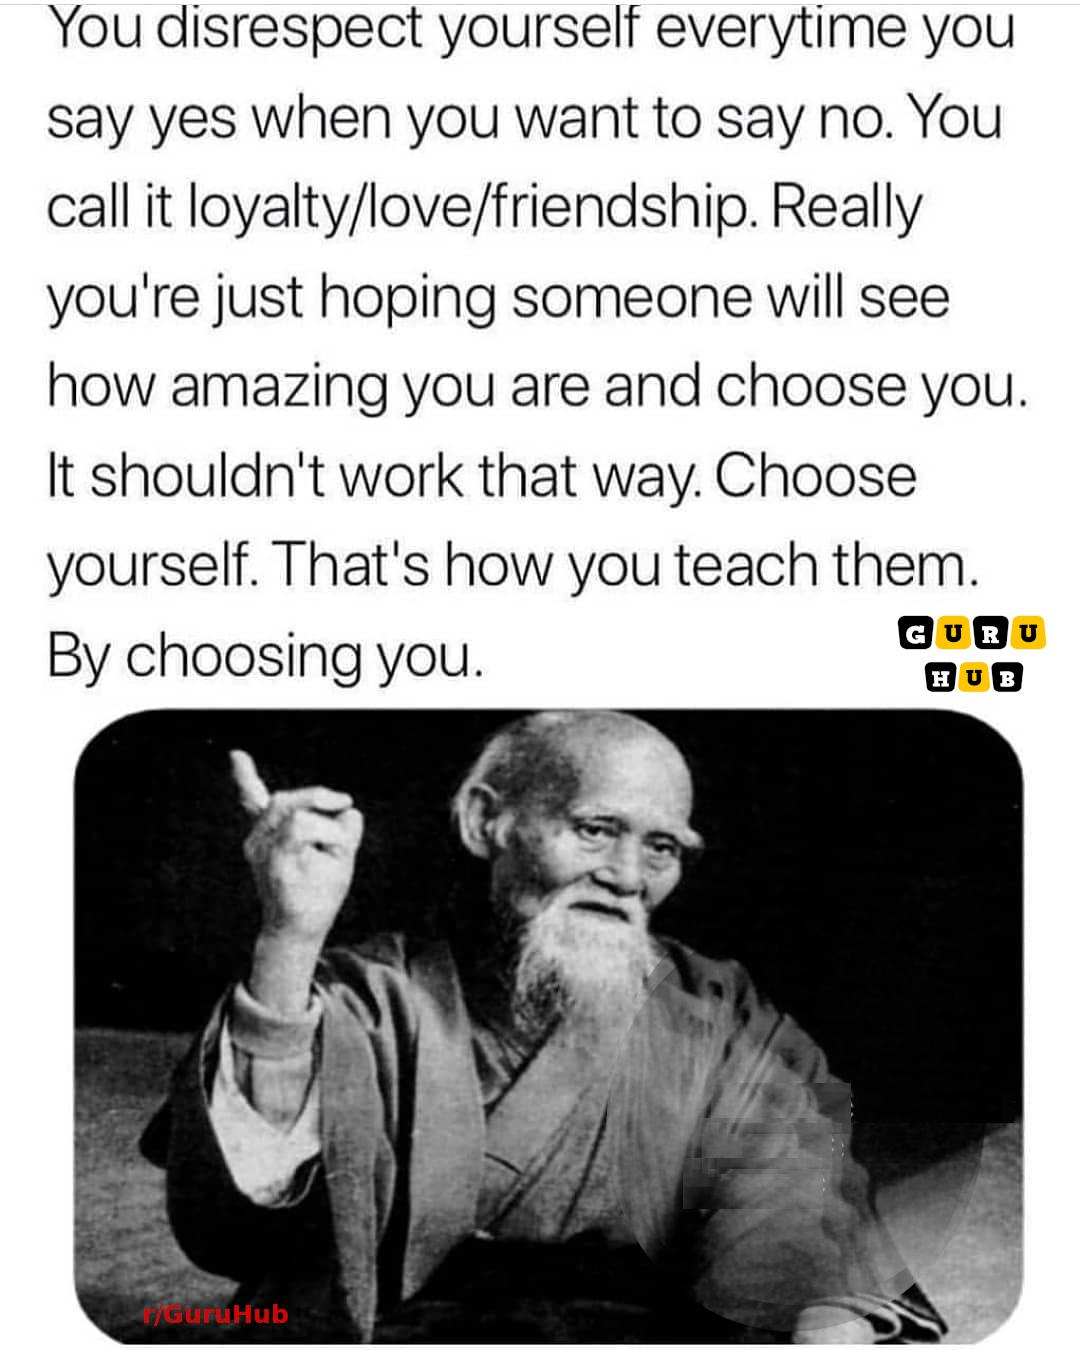 [IMAGE] Saying NO to things you don't want/like to do doesn't make you a bad person. Love, listen and respect yourself first!